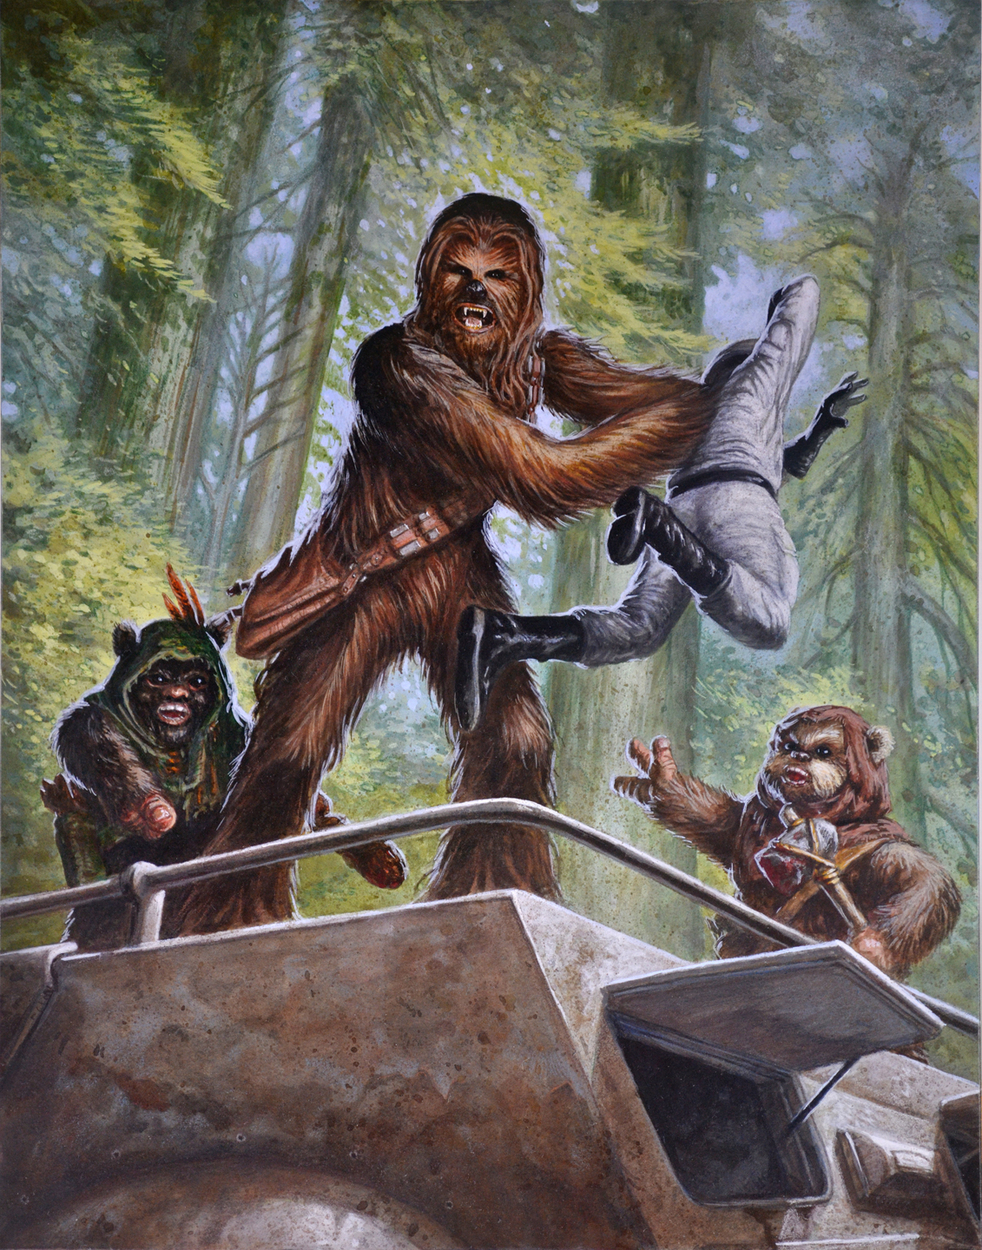 Chewbacca Artwork by Christopher Burdett